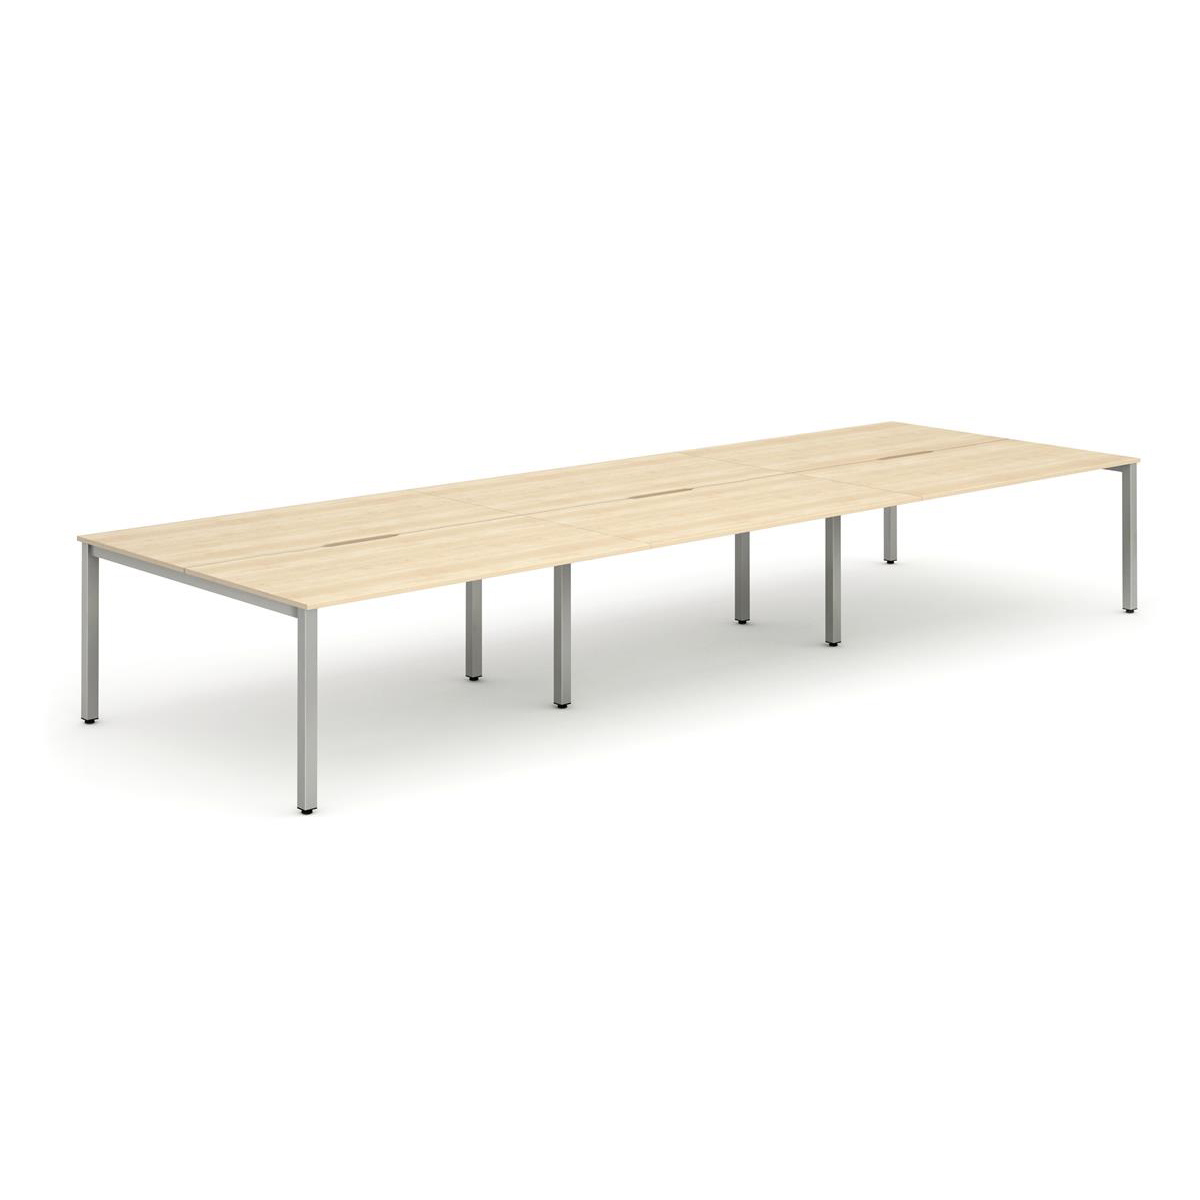 Trexus Bench Desk 6 Person Back to Back Configuration Silver Leg 2800x1600mm Maple Ref BE291